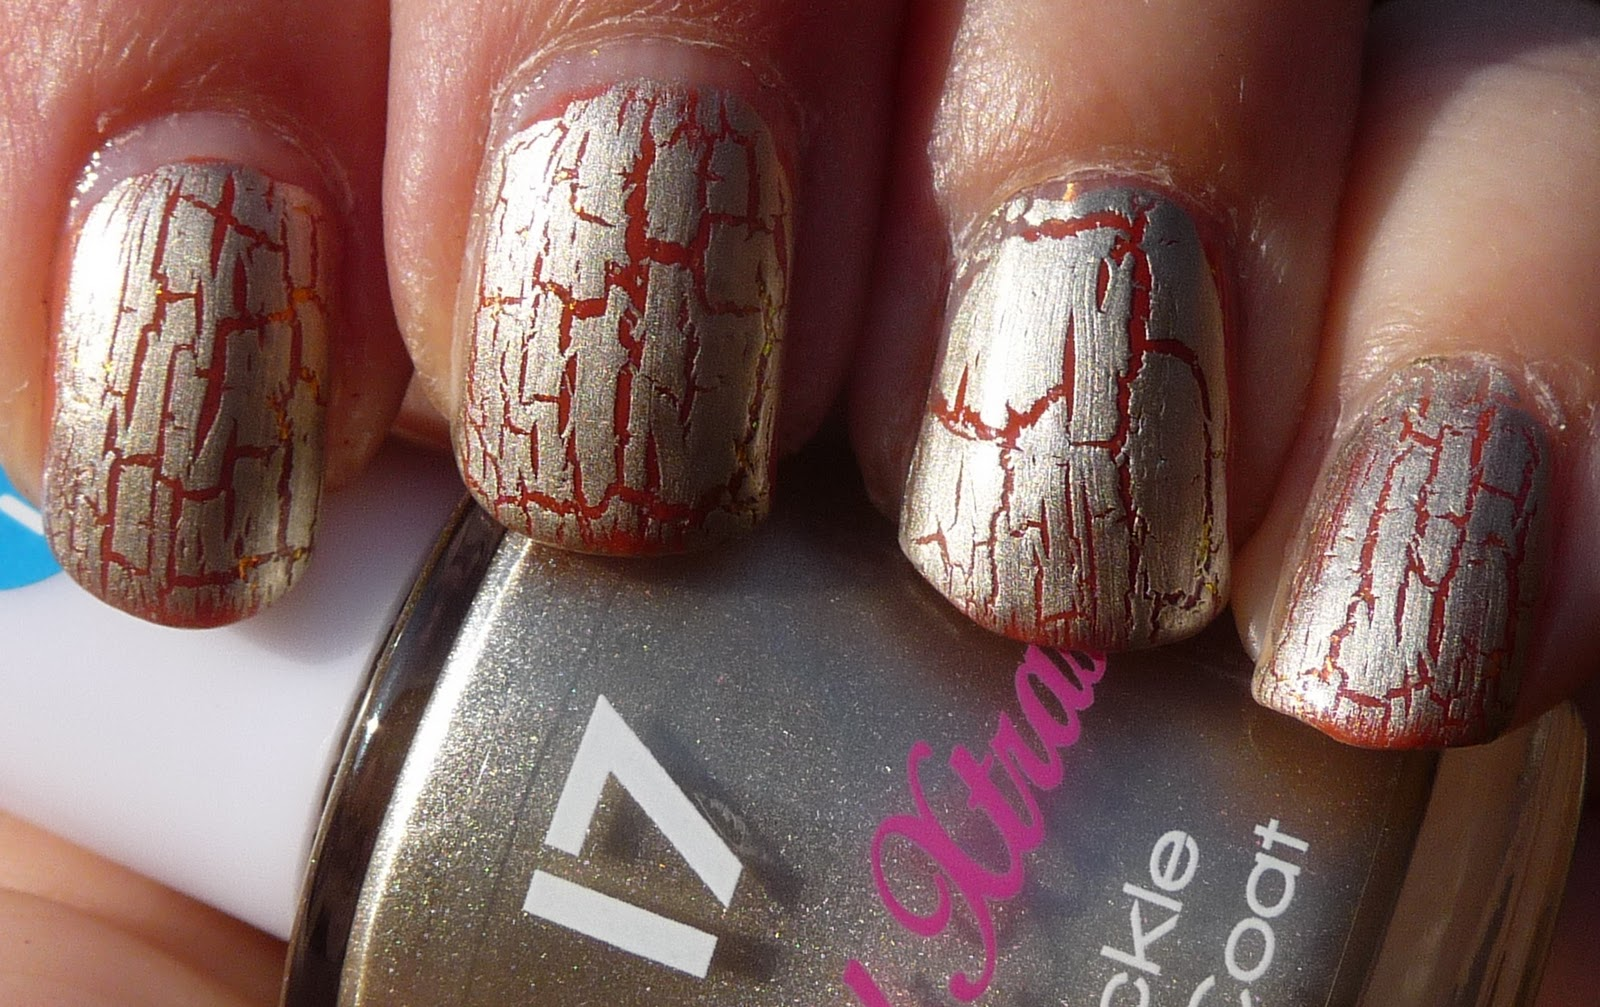 Nails and beyond: March 2011